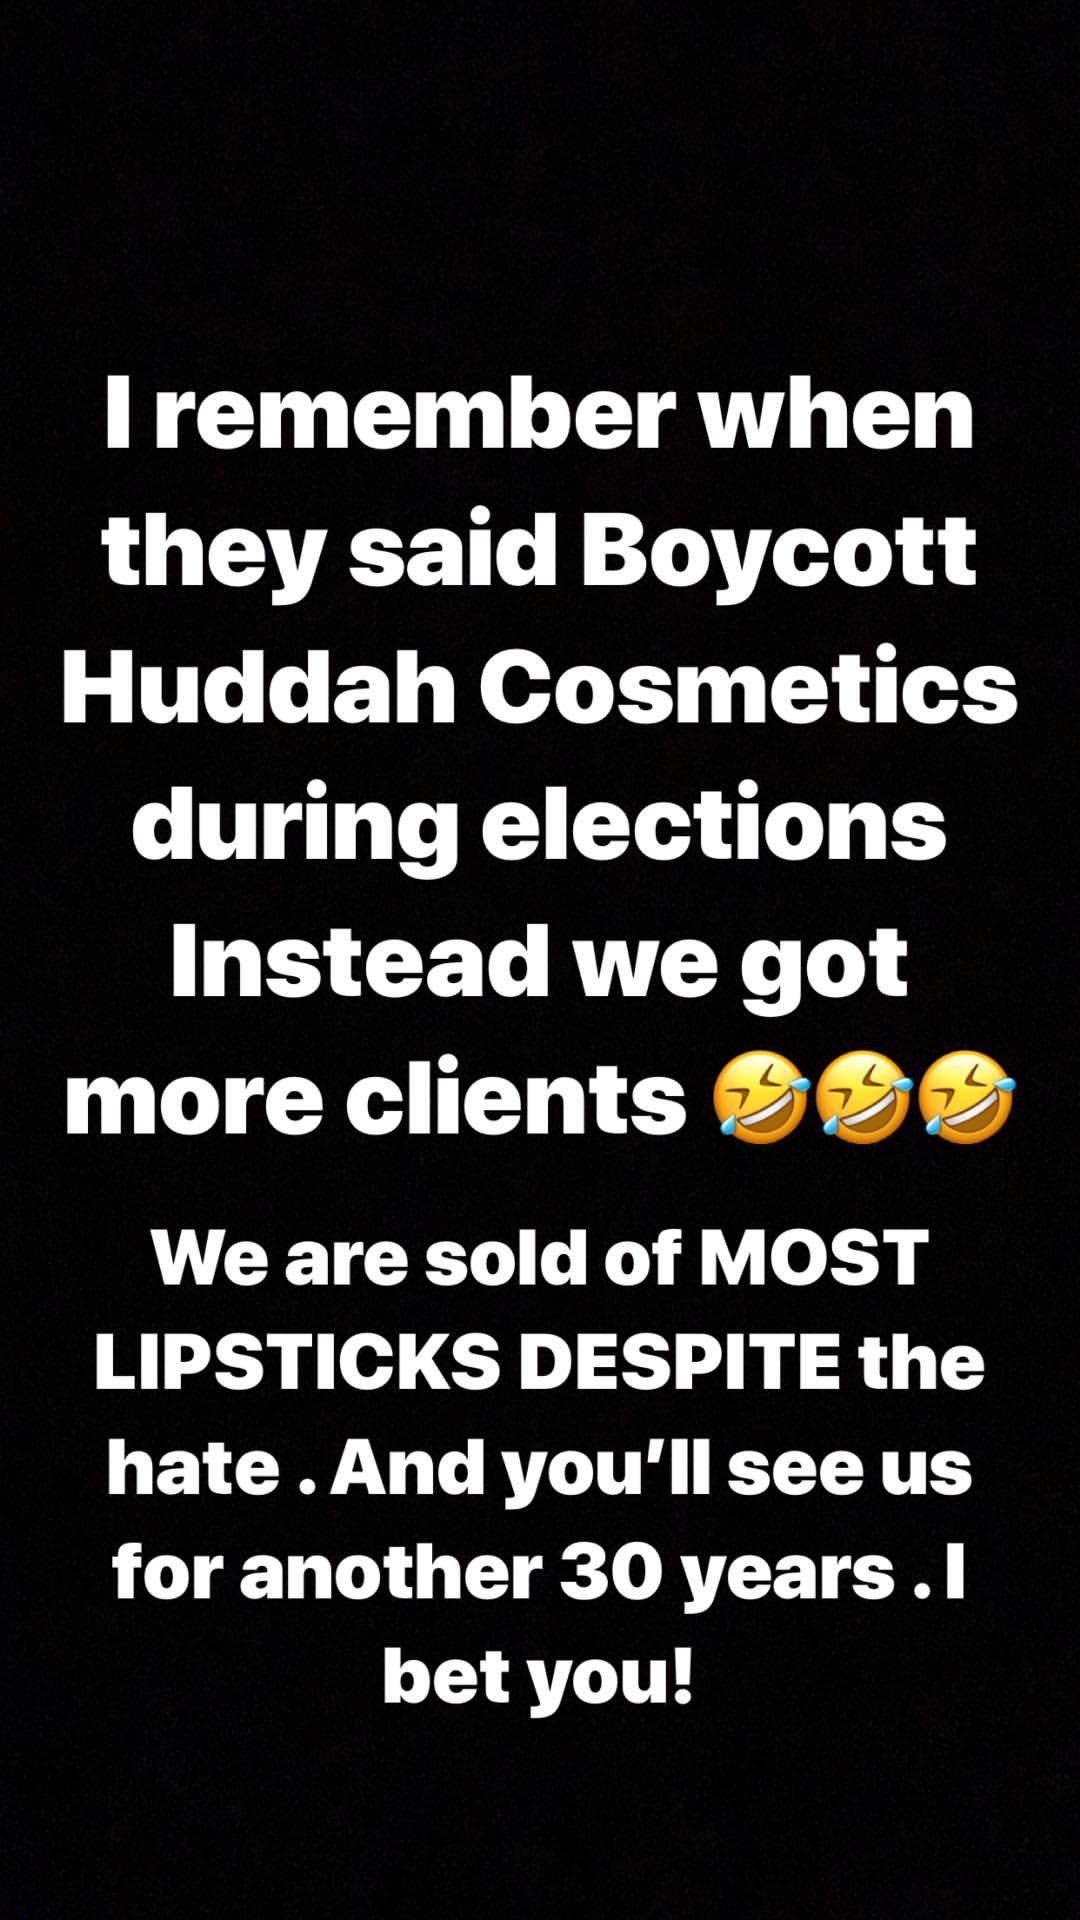 Huddah cosmetics - Huddah Monroe responds to claims she sells poor quality lipsticks